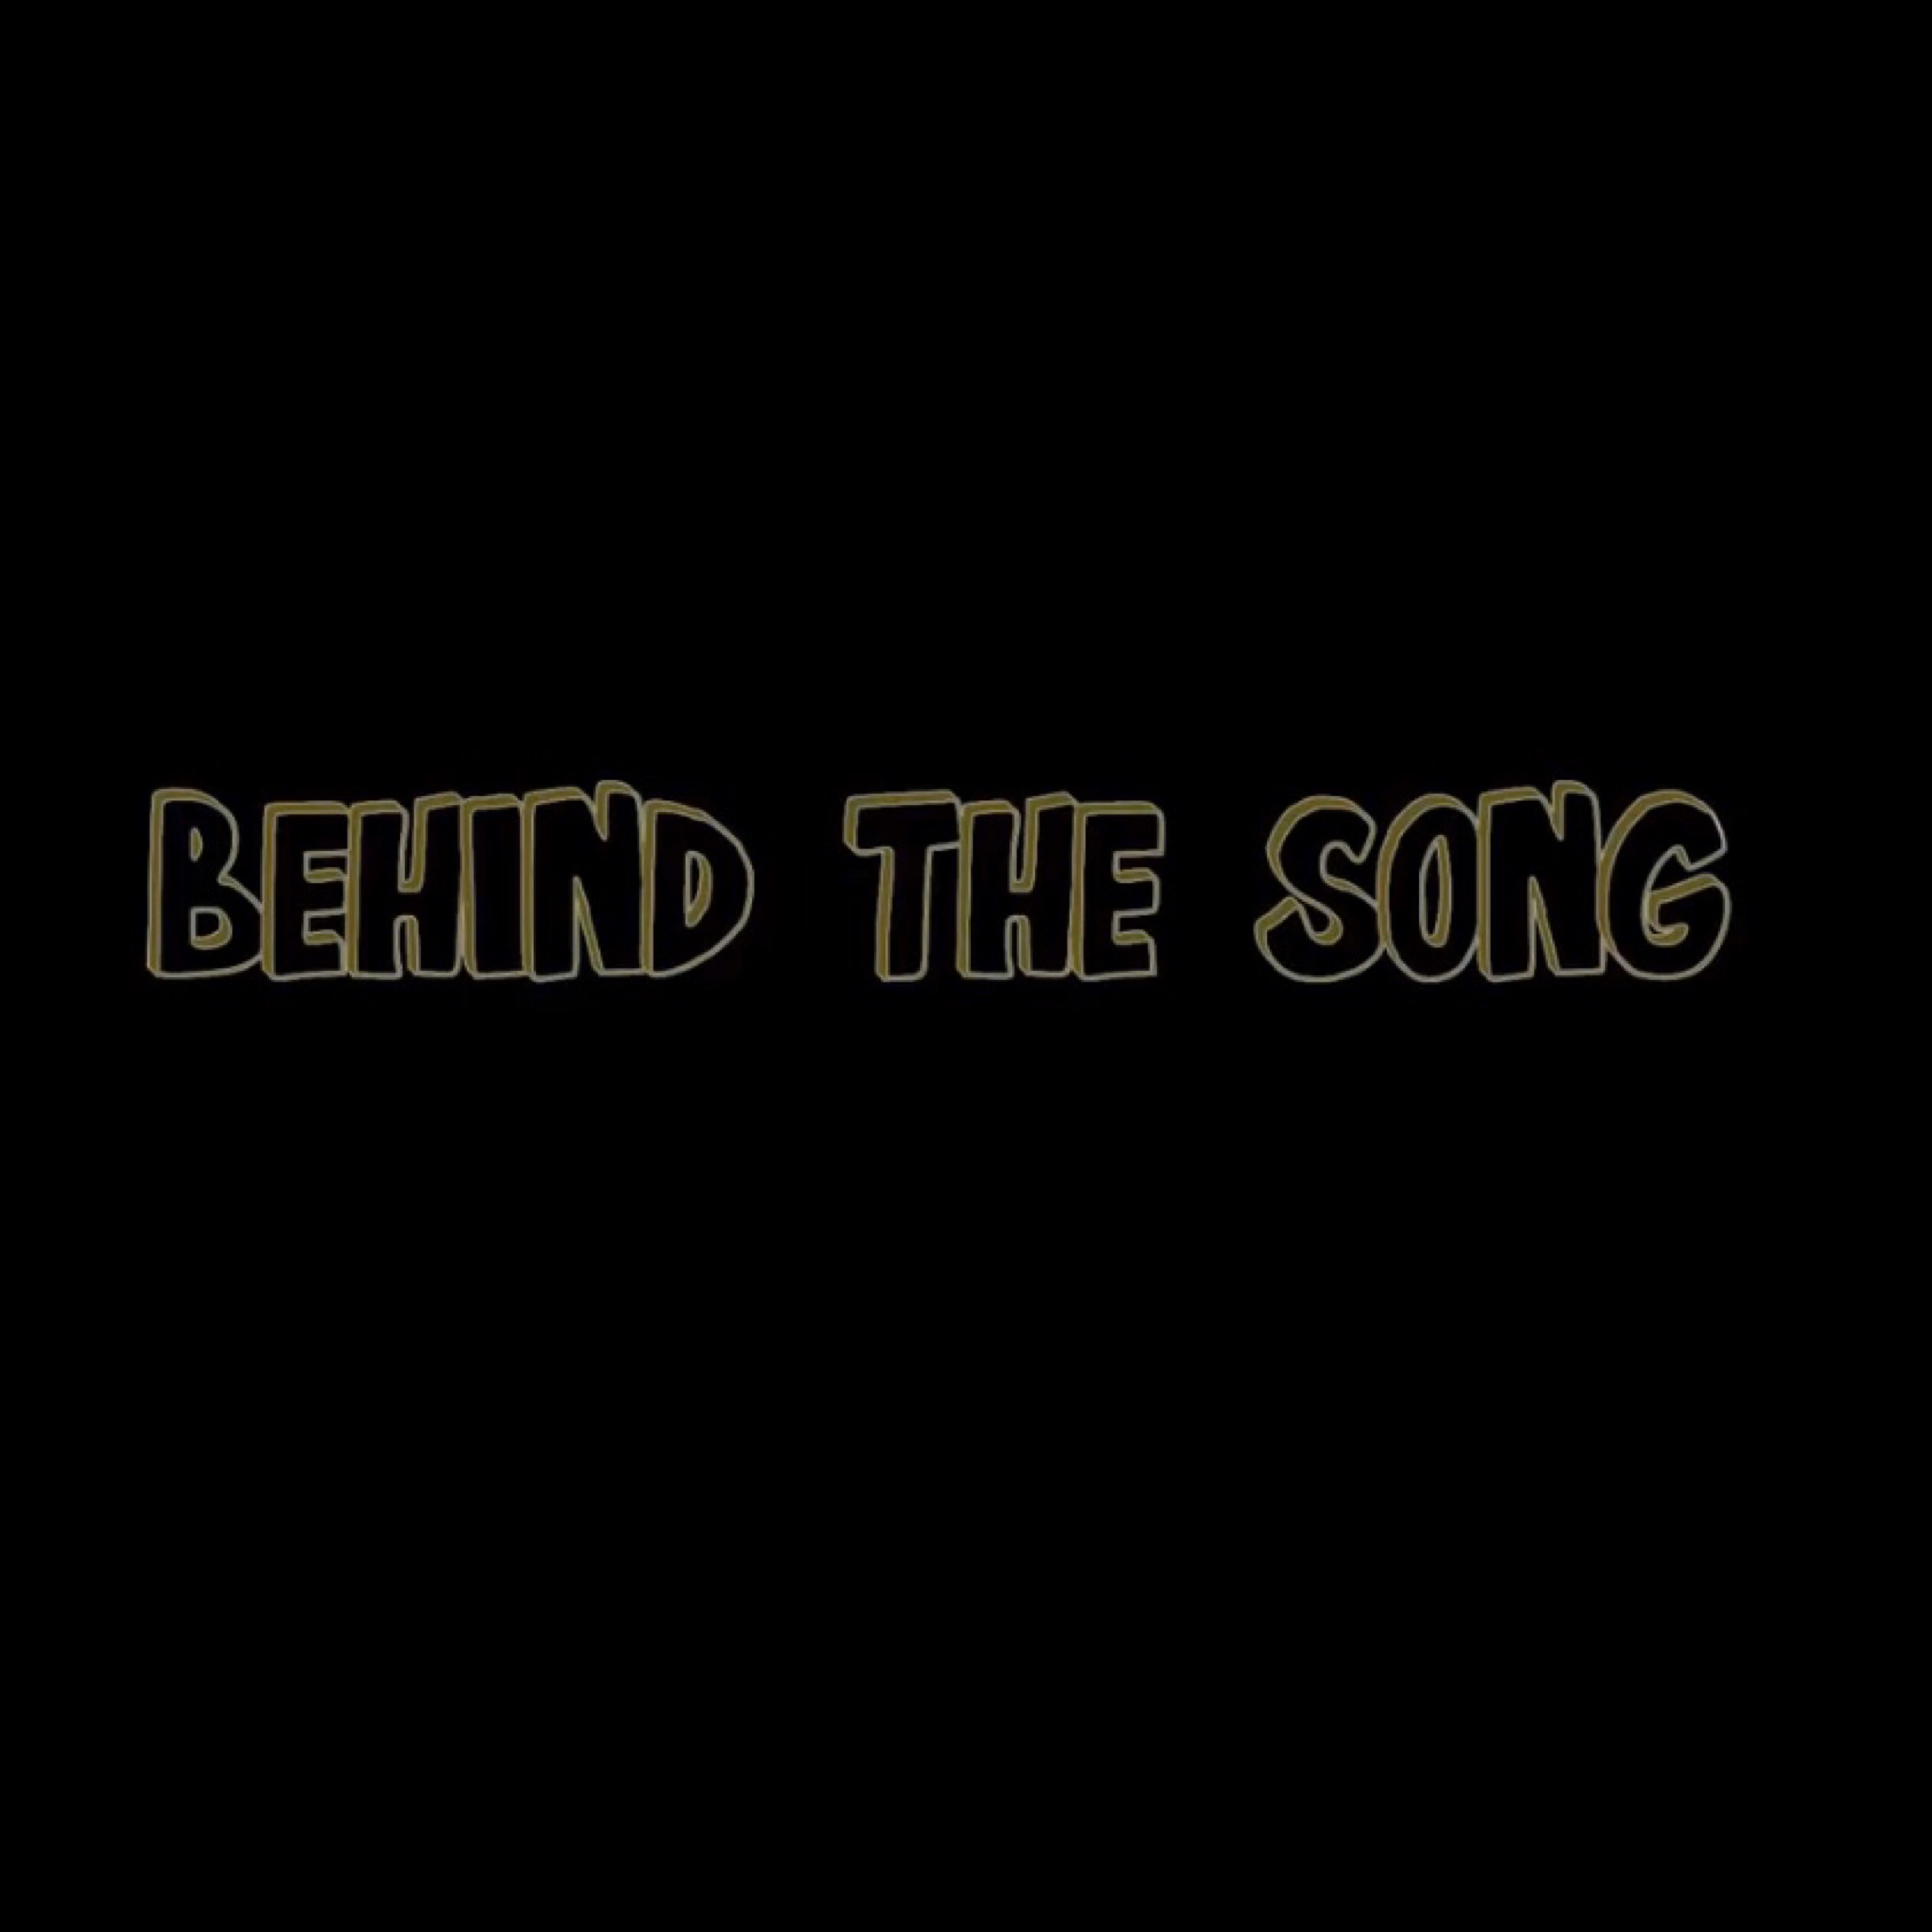 Behind the Song Part I.